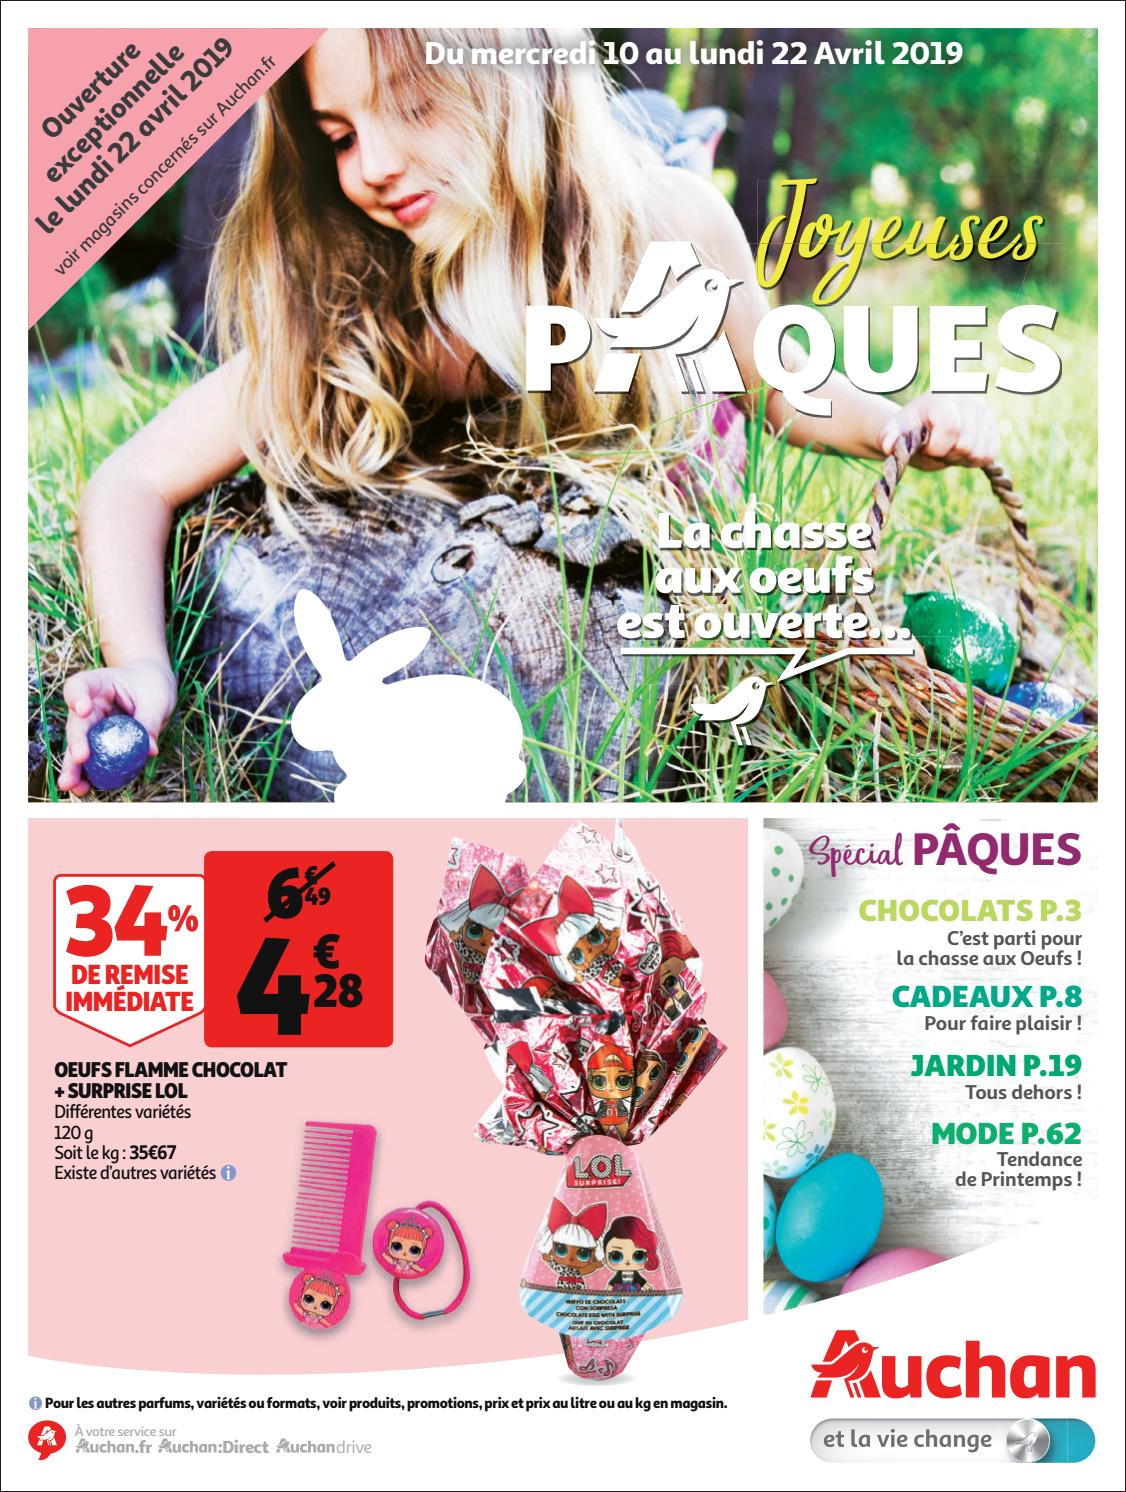 By Saint Avril Auchan Tract 22 Issuu 10 2019 Au Omer iPkXZOu